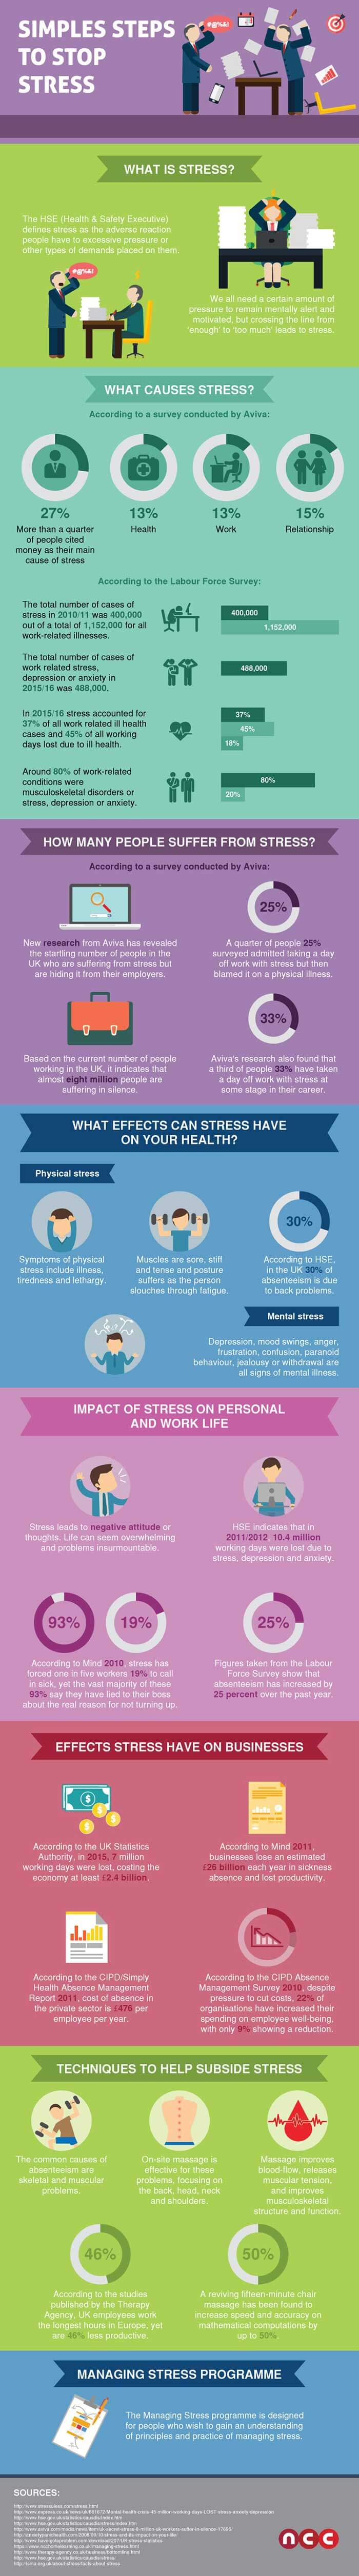 Simple Steps To Subside Stress Infographic